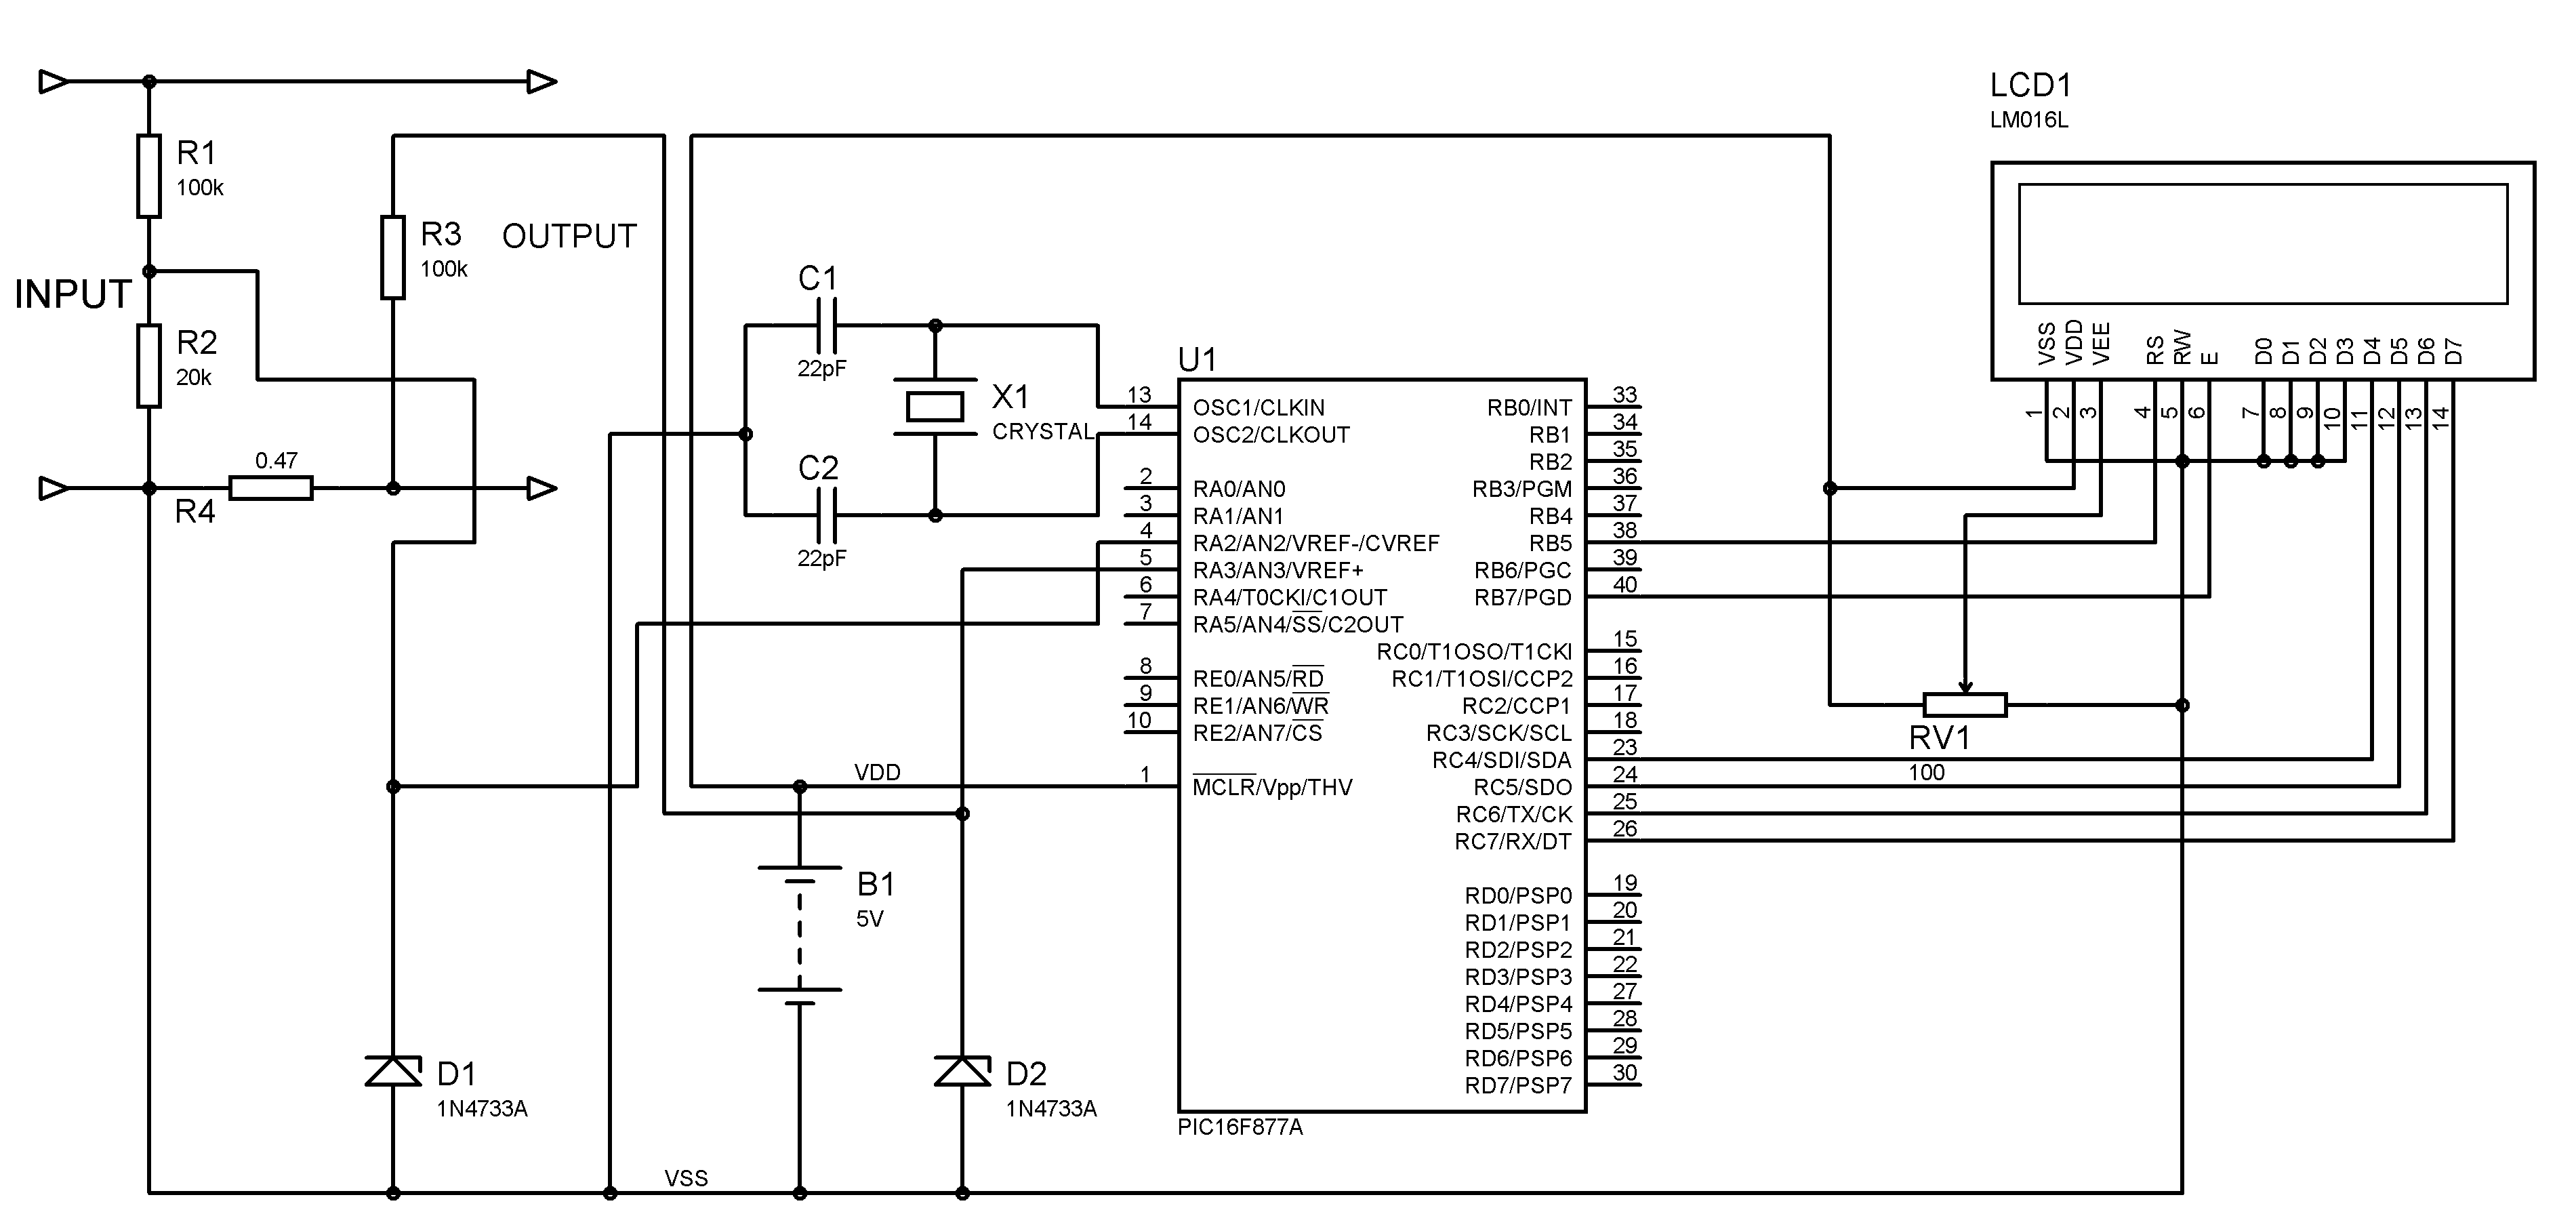 Voltmeterpicg circuit diagram ccuart Gallery